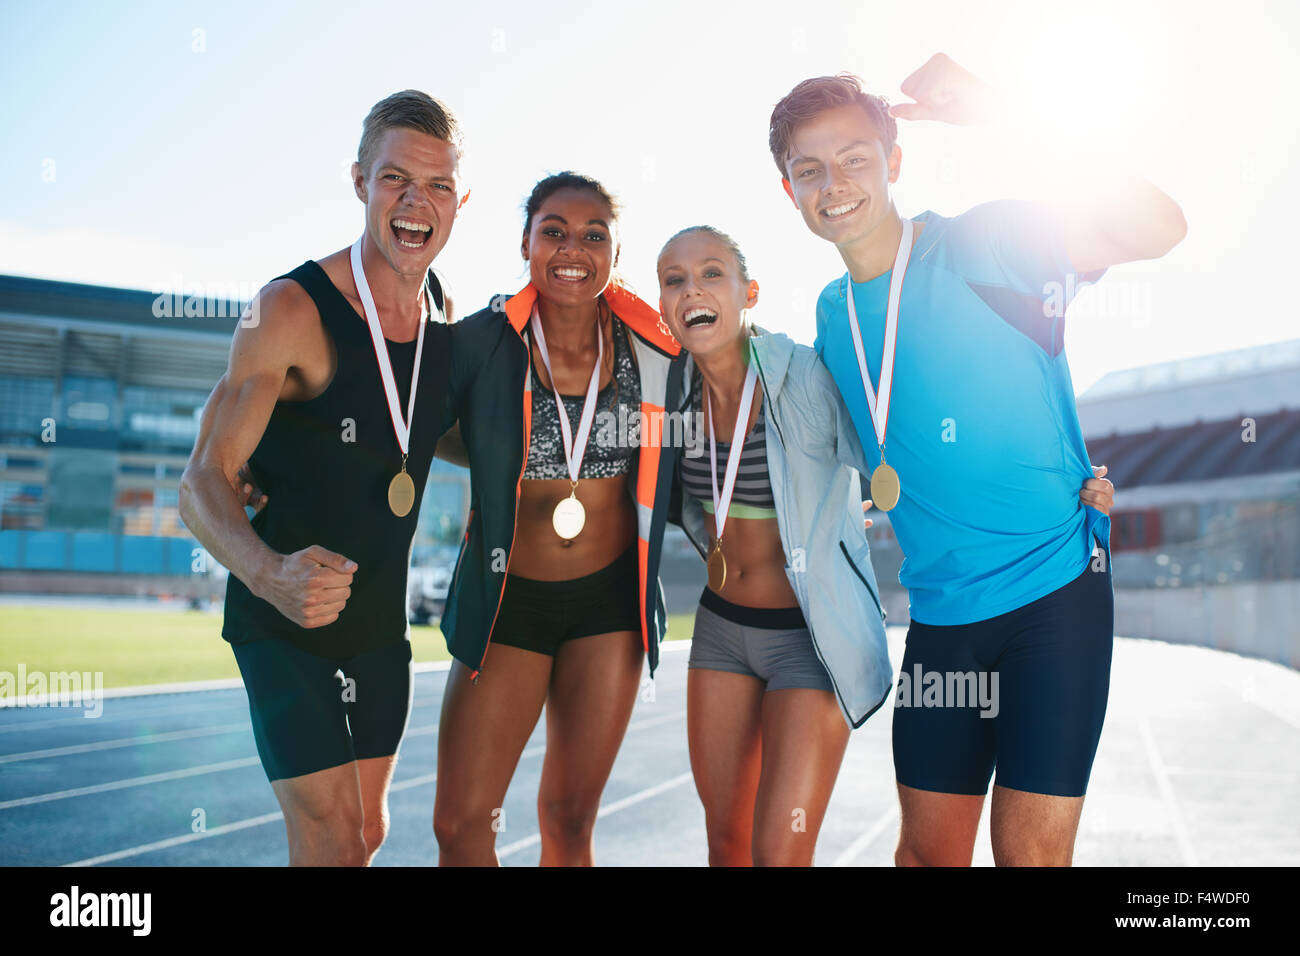 Portrait of young team of athletes enjoying victory. Diverse group of runners with medals celebrating success. - Stock Image